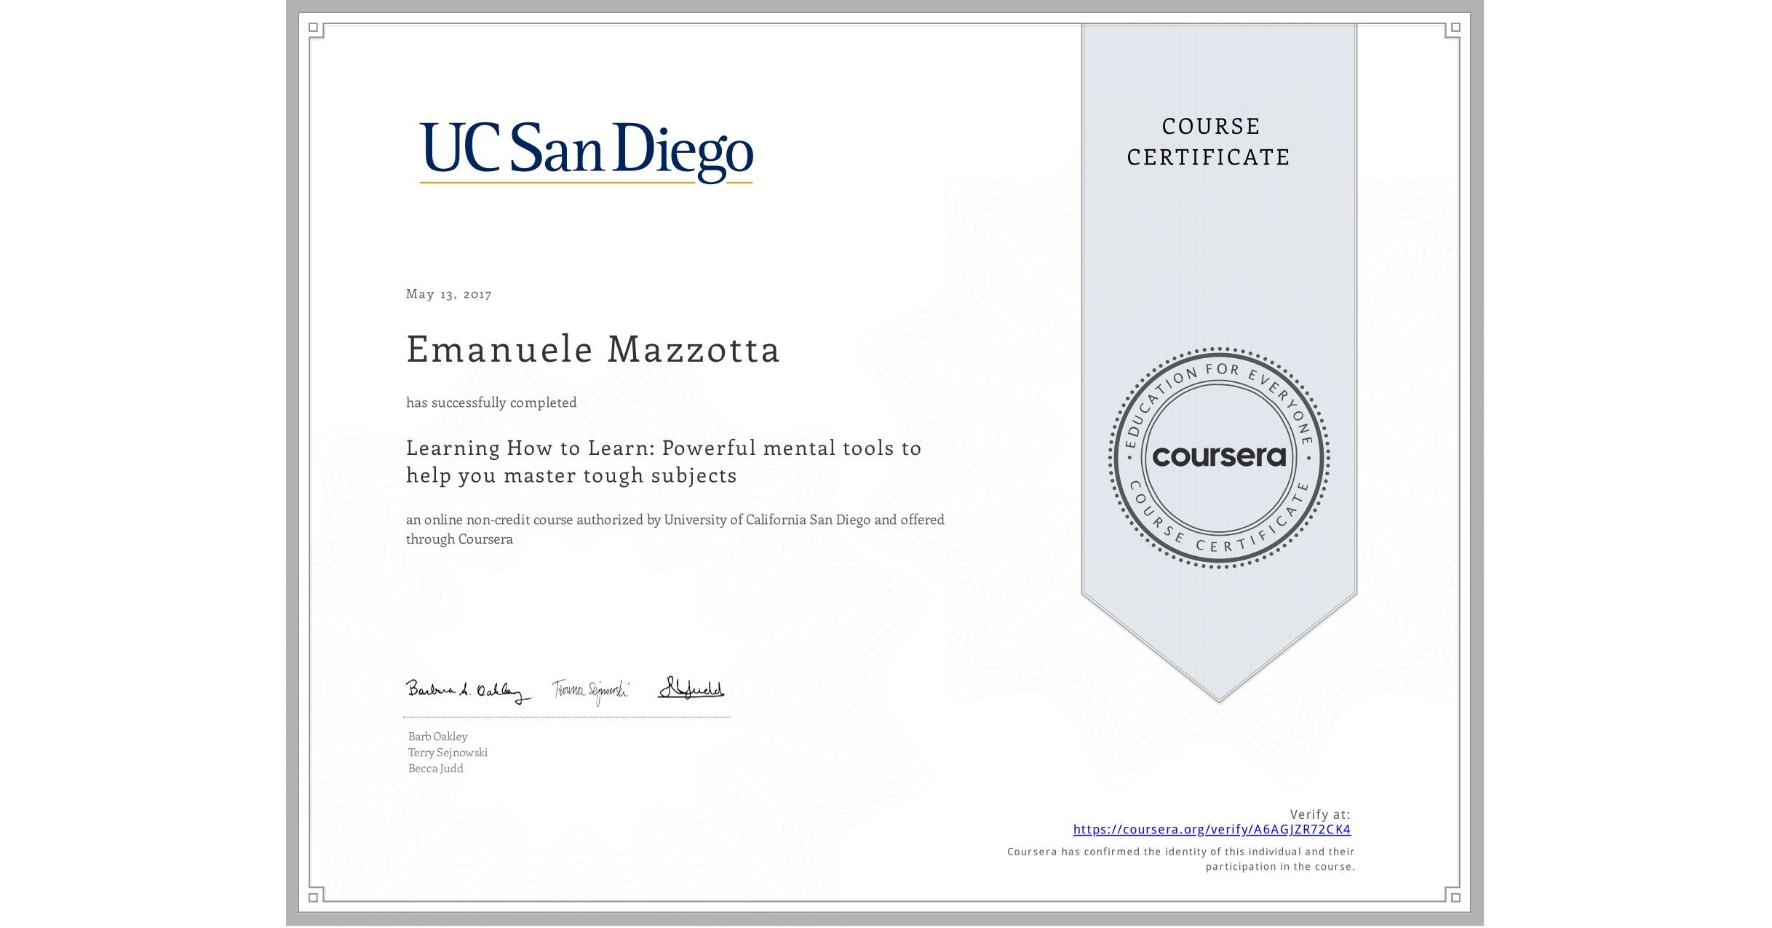 View certificate for Emanuele Mazzotta, Learning How to Learn: Powerful mental tools to help you master tough subjects, an online non-credit course authorized by McMaster University & University of California San Diego and offered through Coursera